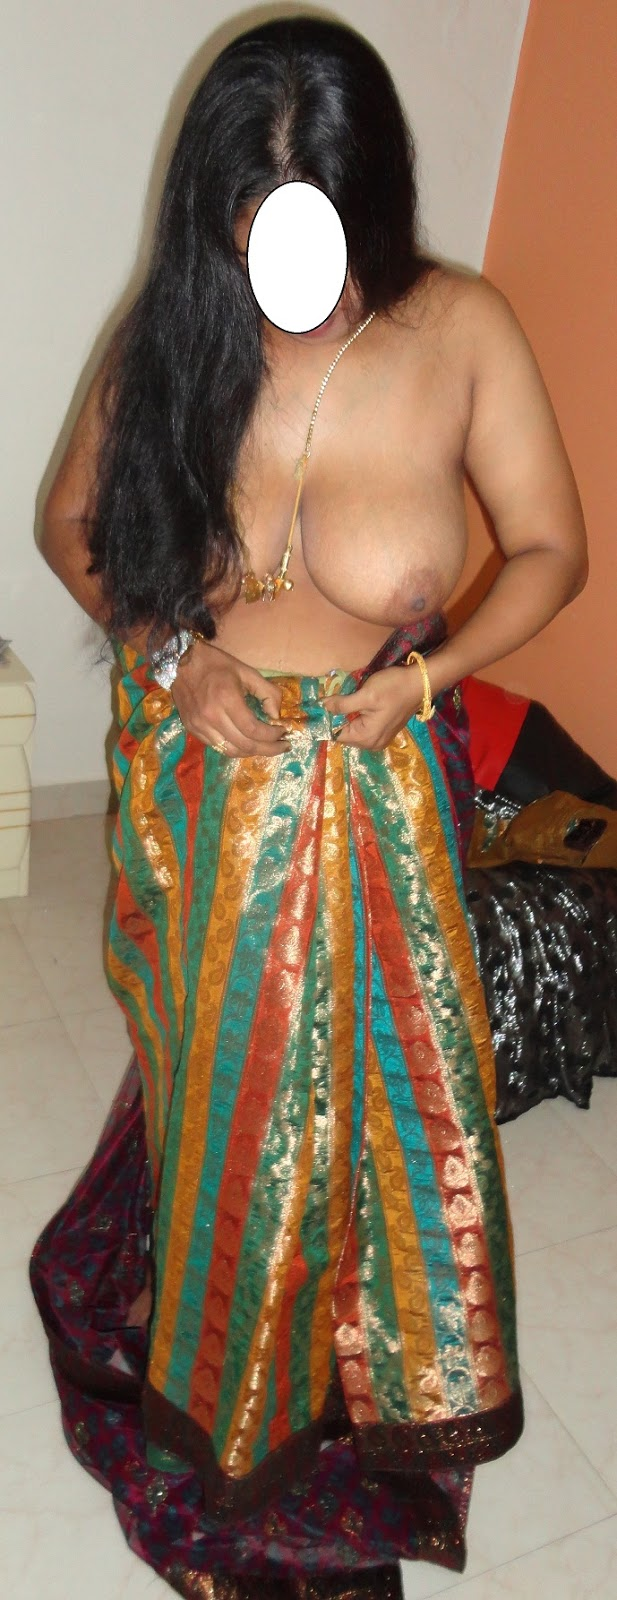 Saree stripped very sexy, dont wanna short dick man